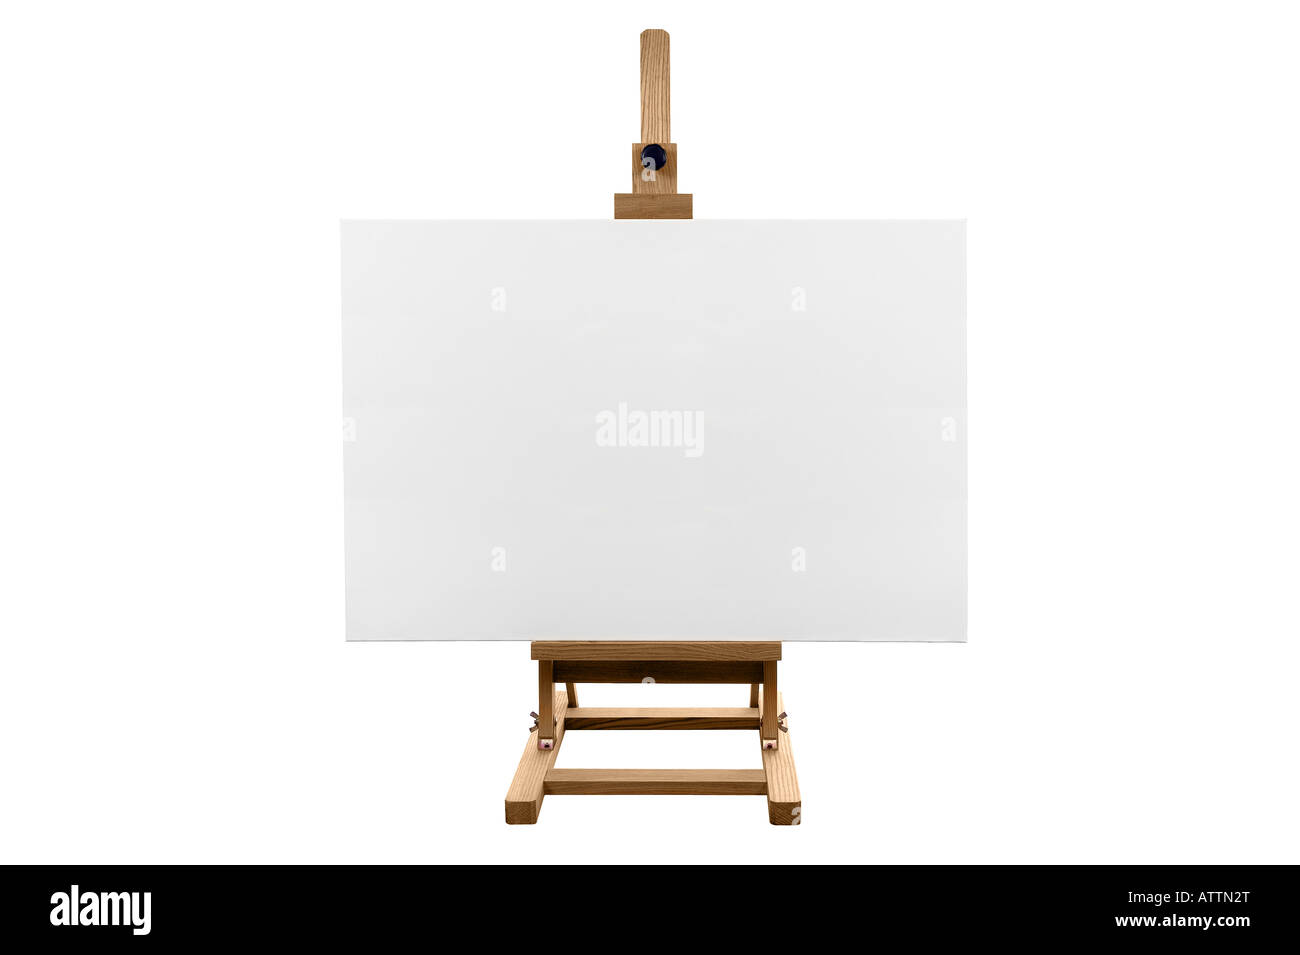 A genuine blank canvas on a wooden easel isolated on a white background - Stock Image